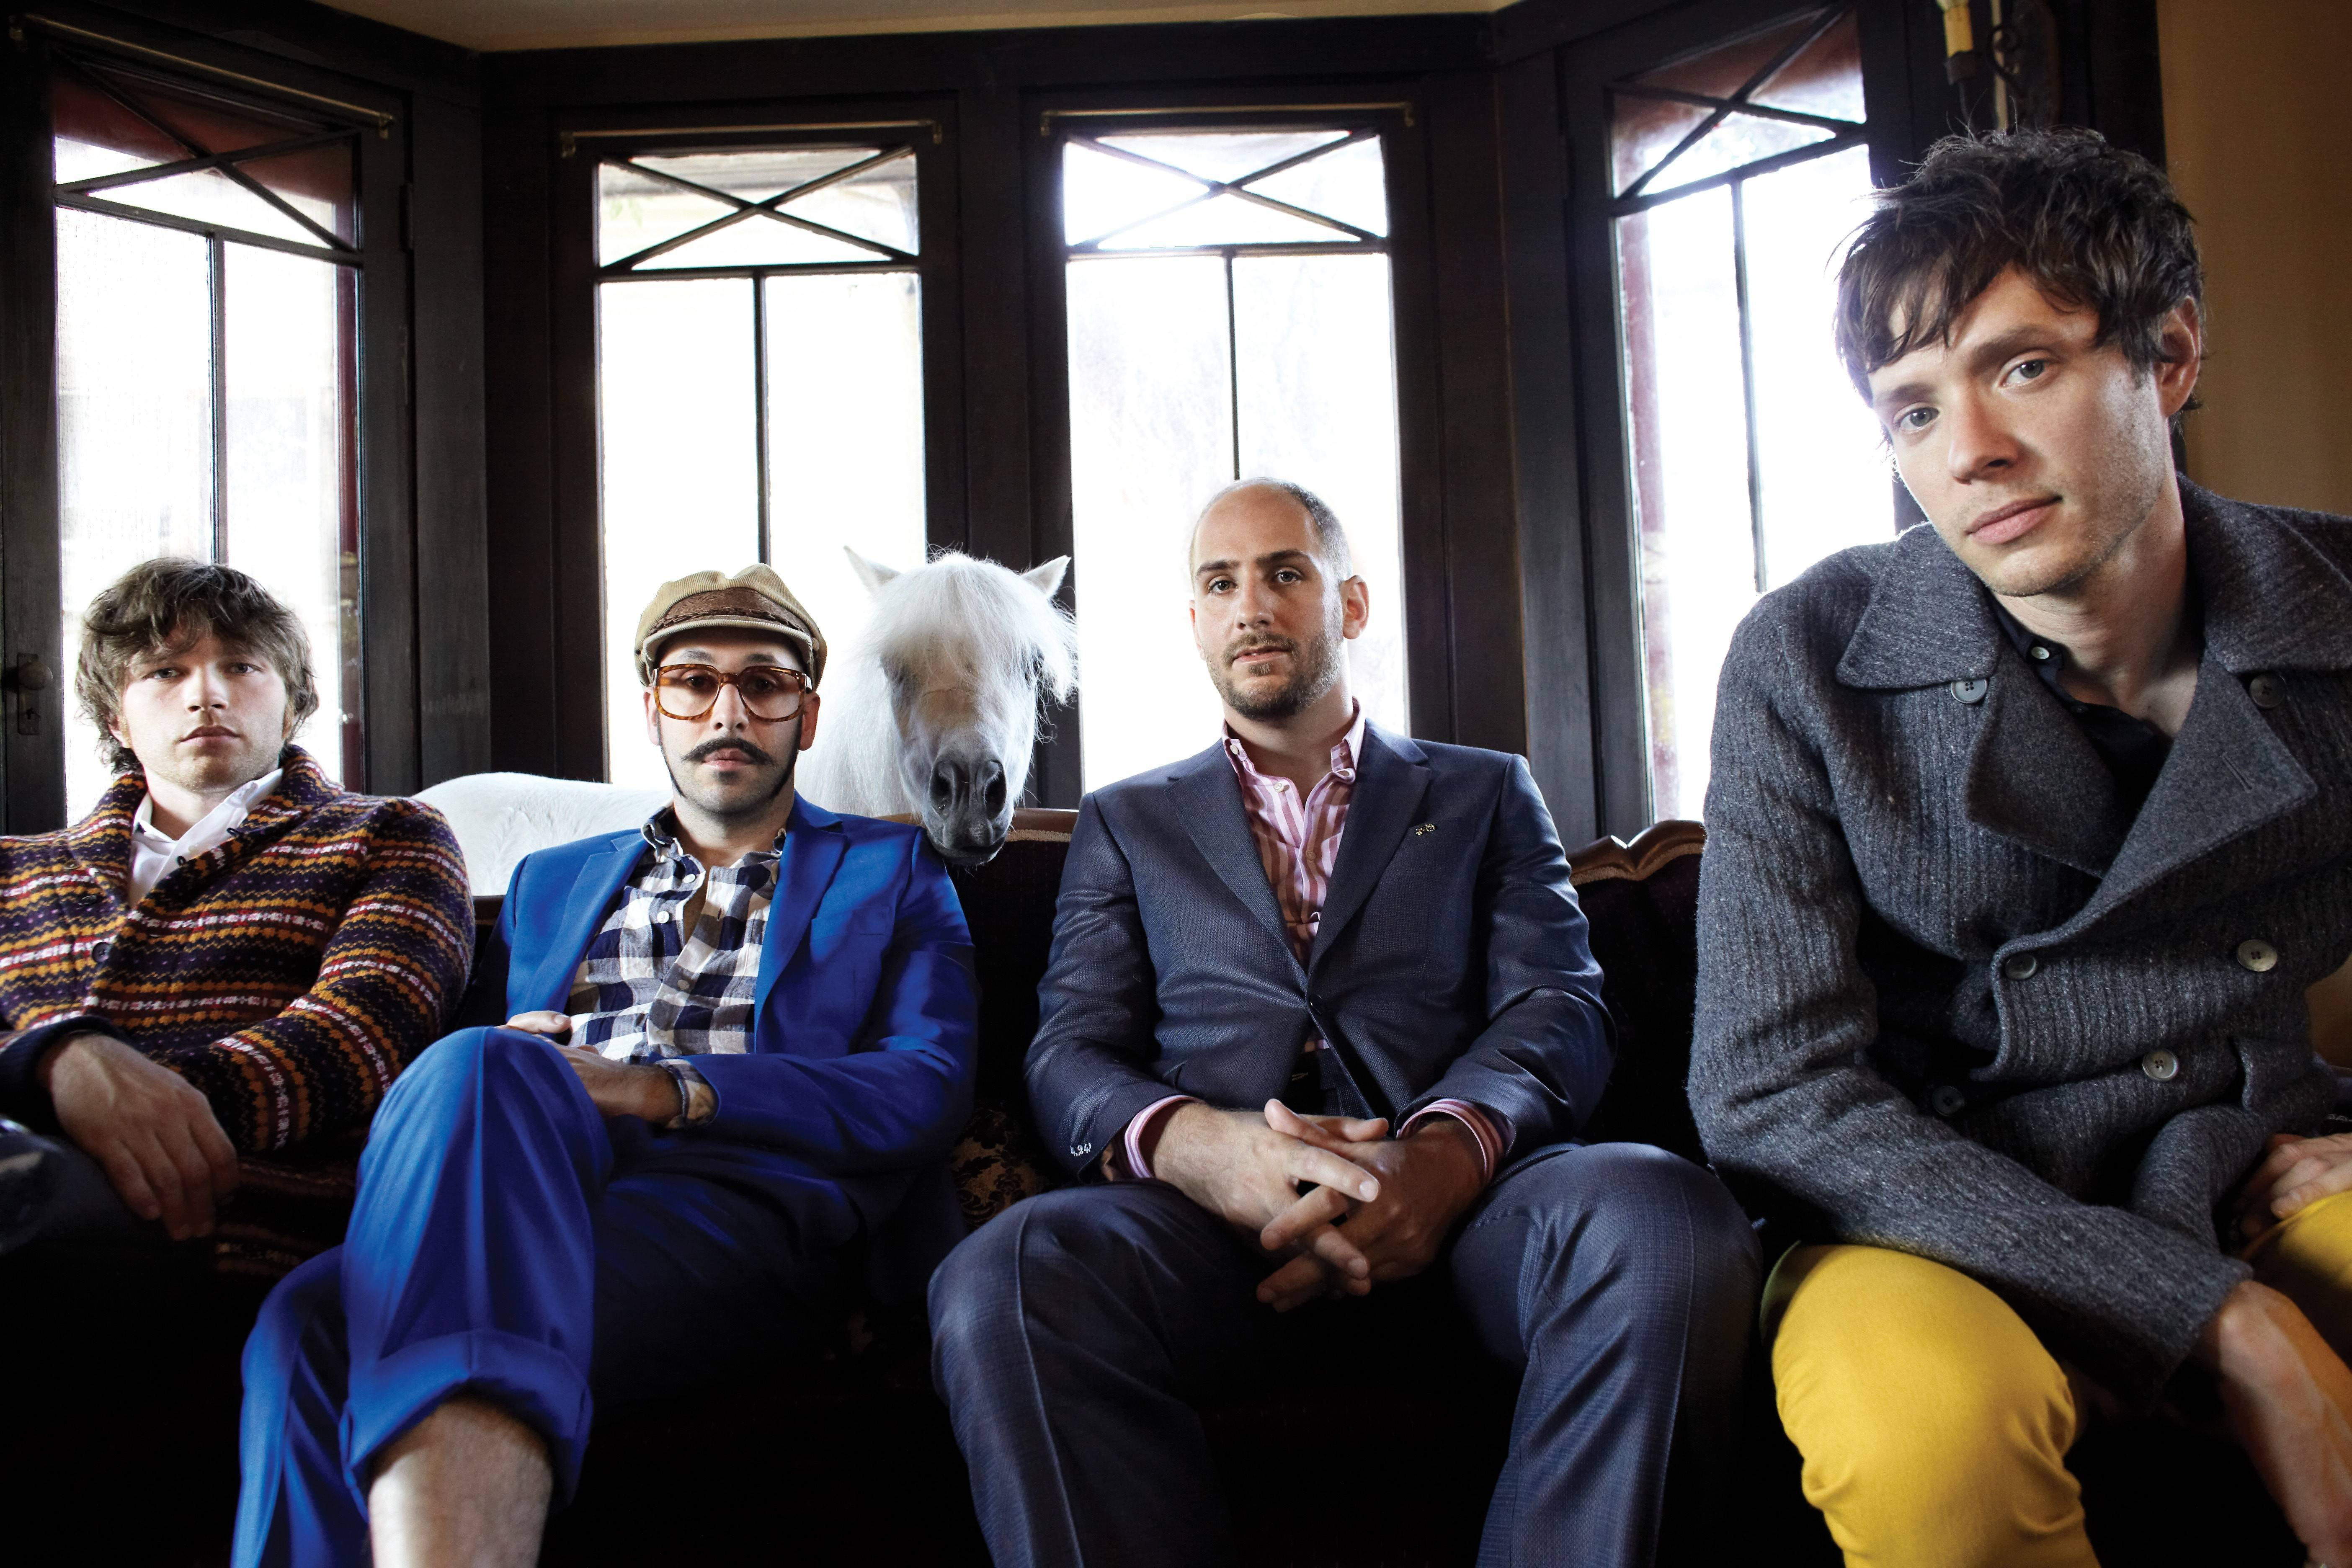 Dan Konopka, of Elmhurst, and his band OK GO will perform at Lincoln Hall in Chicago on Friday, Aug. 15.